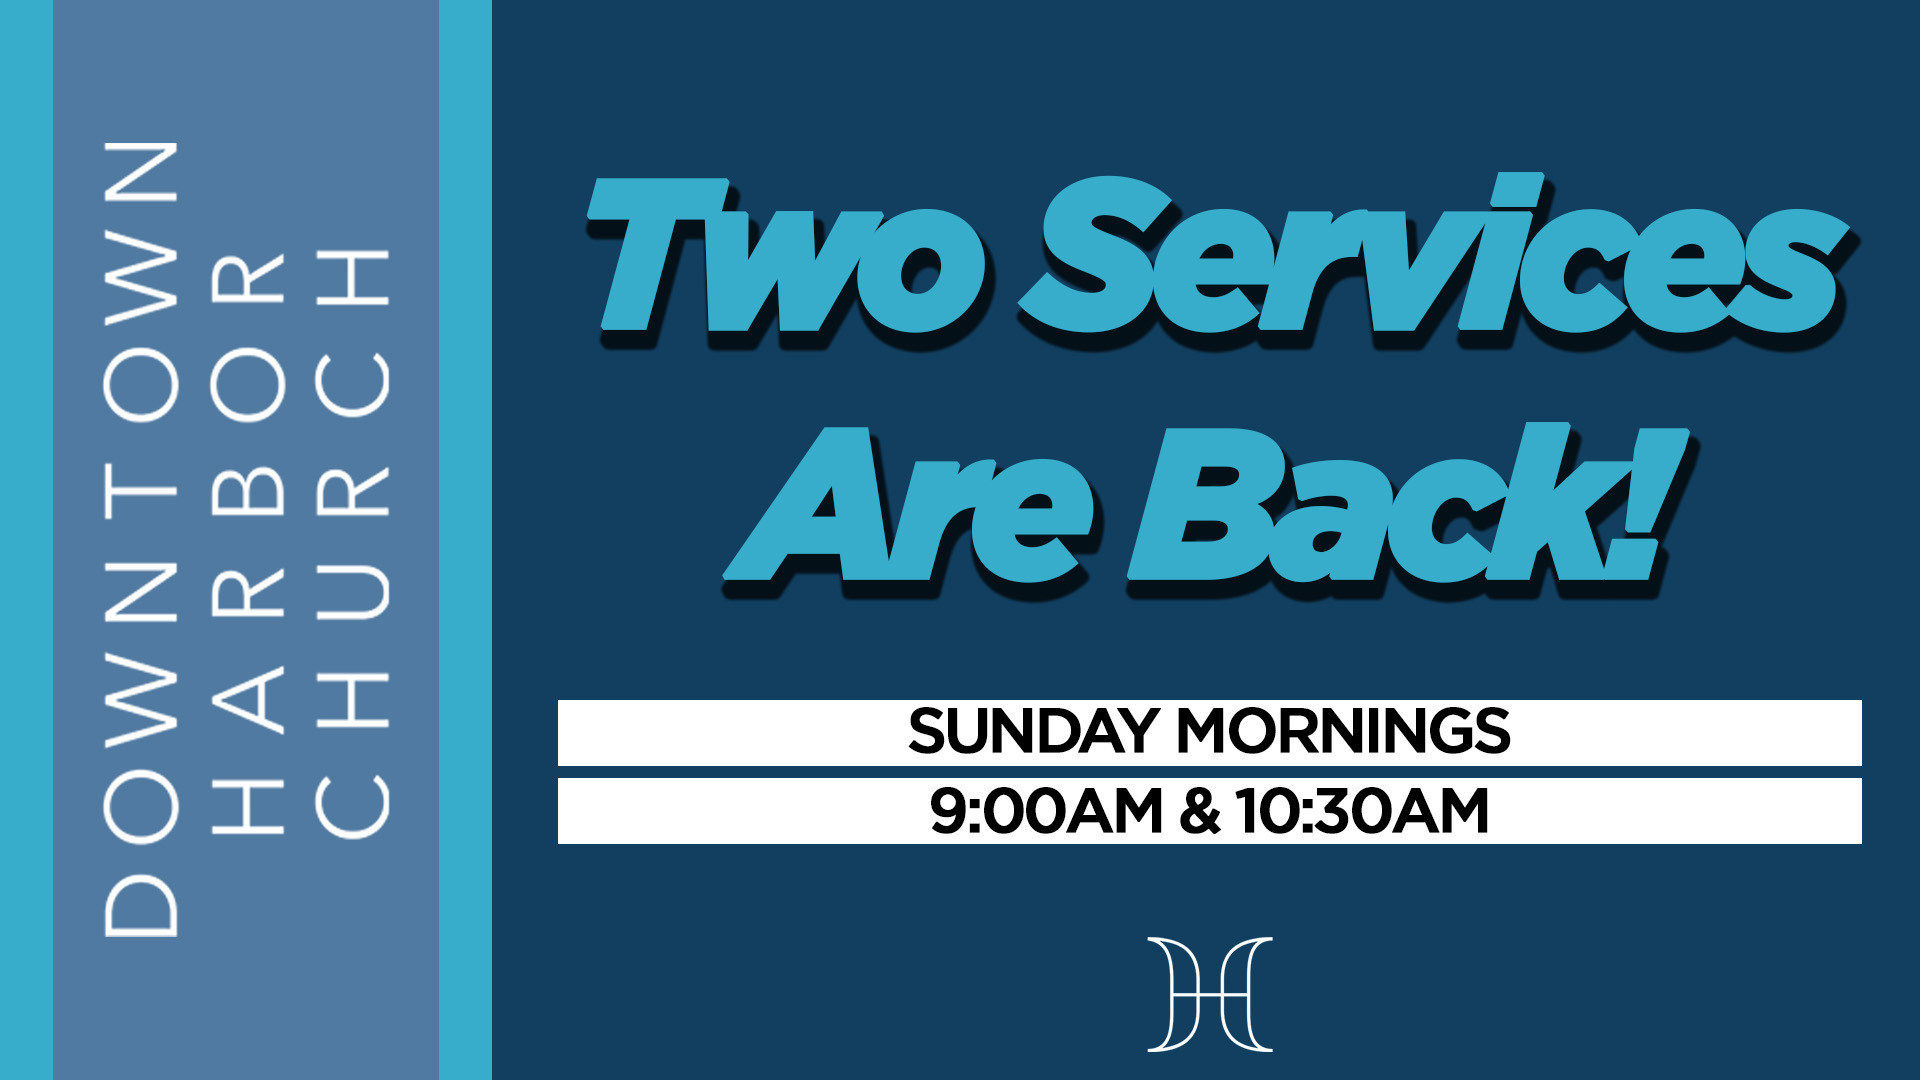 DHC Services now available at 9:00am & 10:30am!